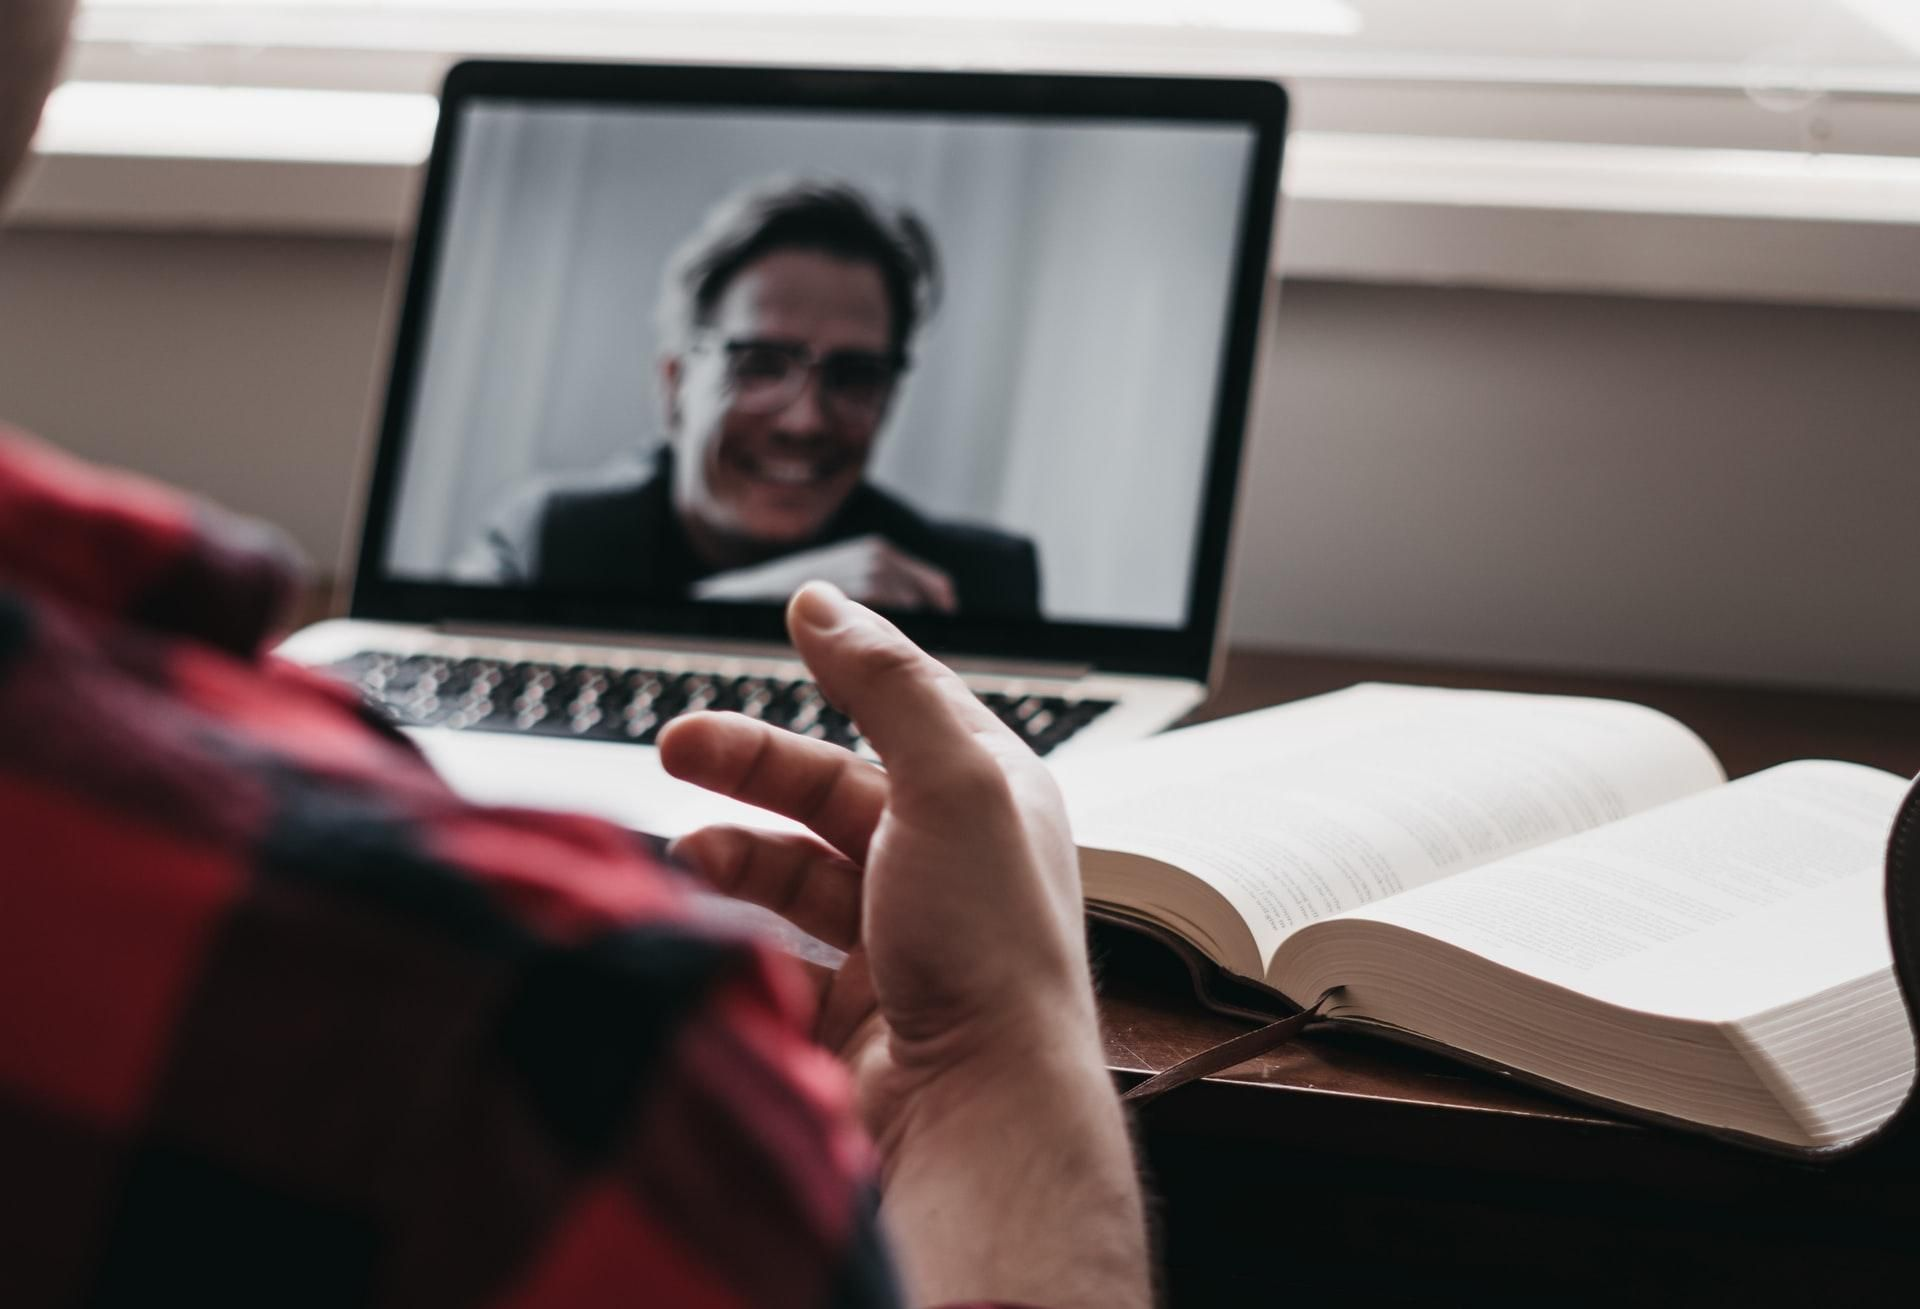 How To Make Conflict Productive At Work, On Zoom And At Home For The Holidays